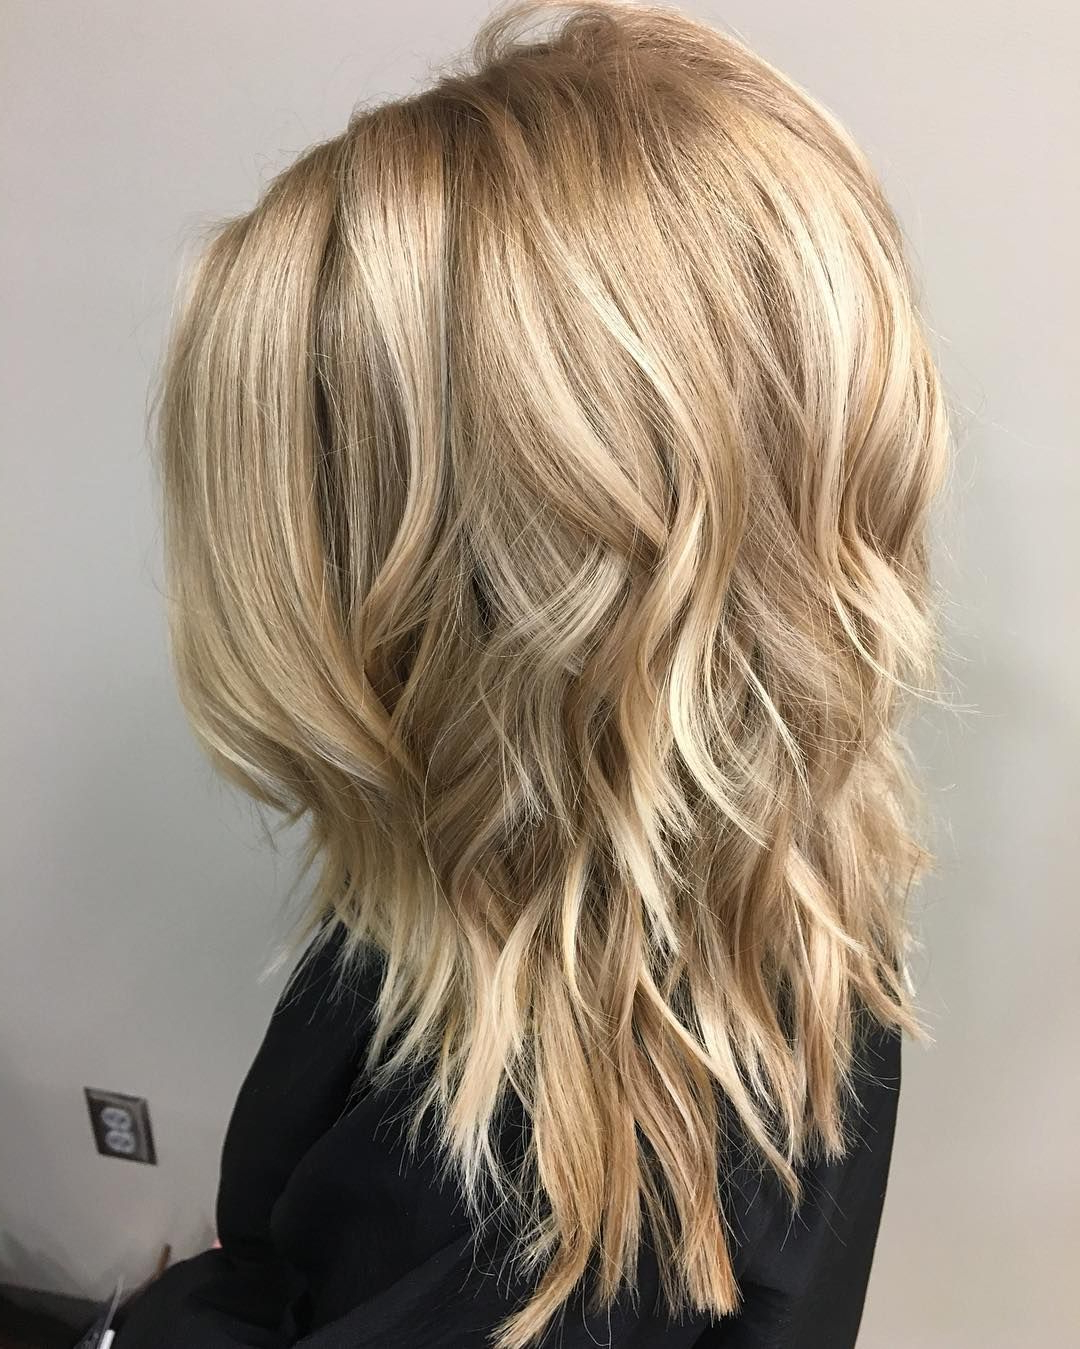 Medium Hairstyle : Medium Length Layered Hairstyles Adorable With With Regard To Most Current Swoopy Layers Hairstyles For Mid Length Hair (View 7 of 20)